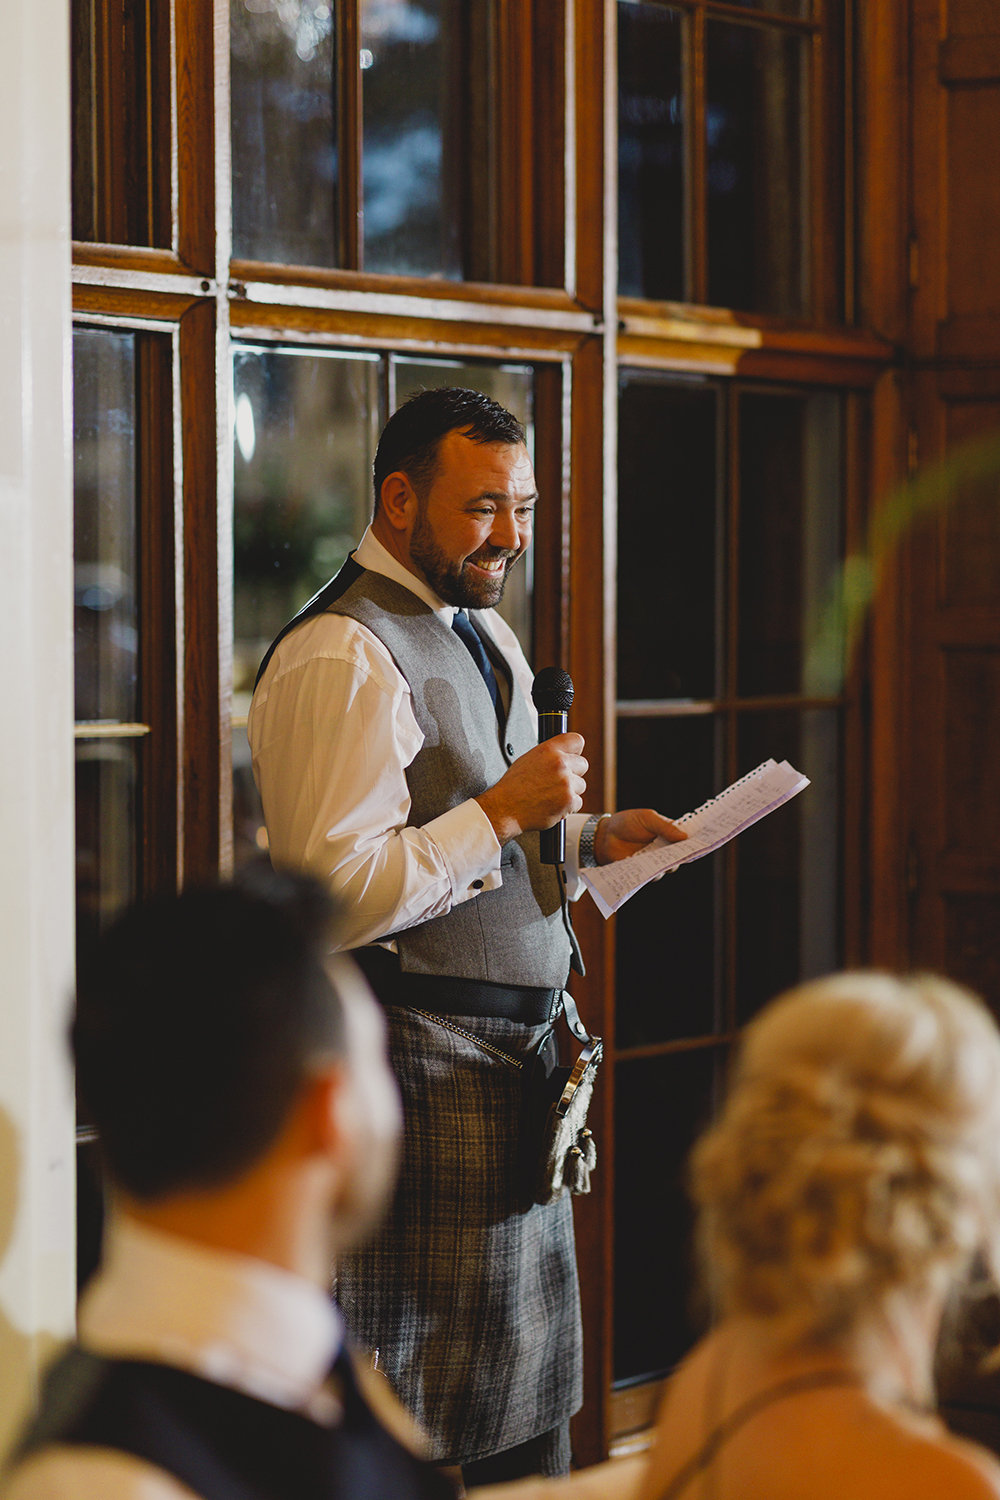 reception - Drumtochty Castle autumnal wedding by Duke Wedding Photography